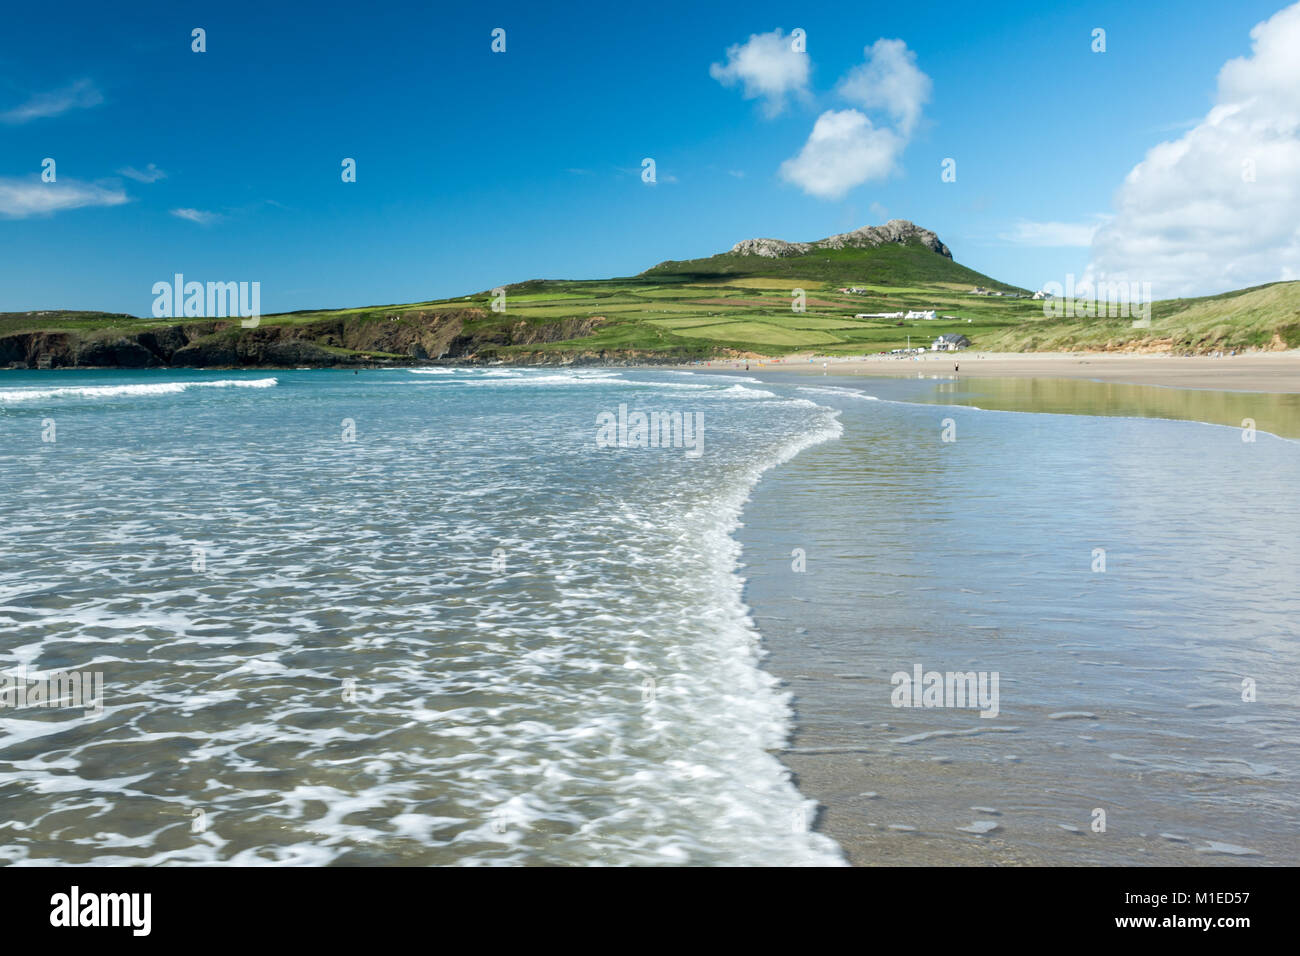 A gentle wave rolls over the sands of Whitesands Bay, near St Davids, Wales, under a blue sky with fluffy white - Stock Image